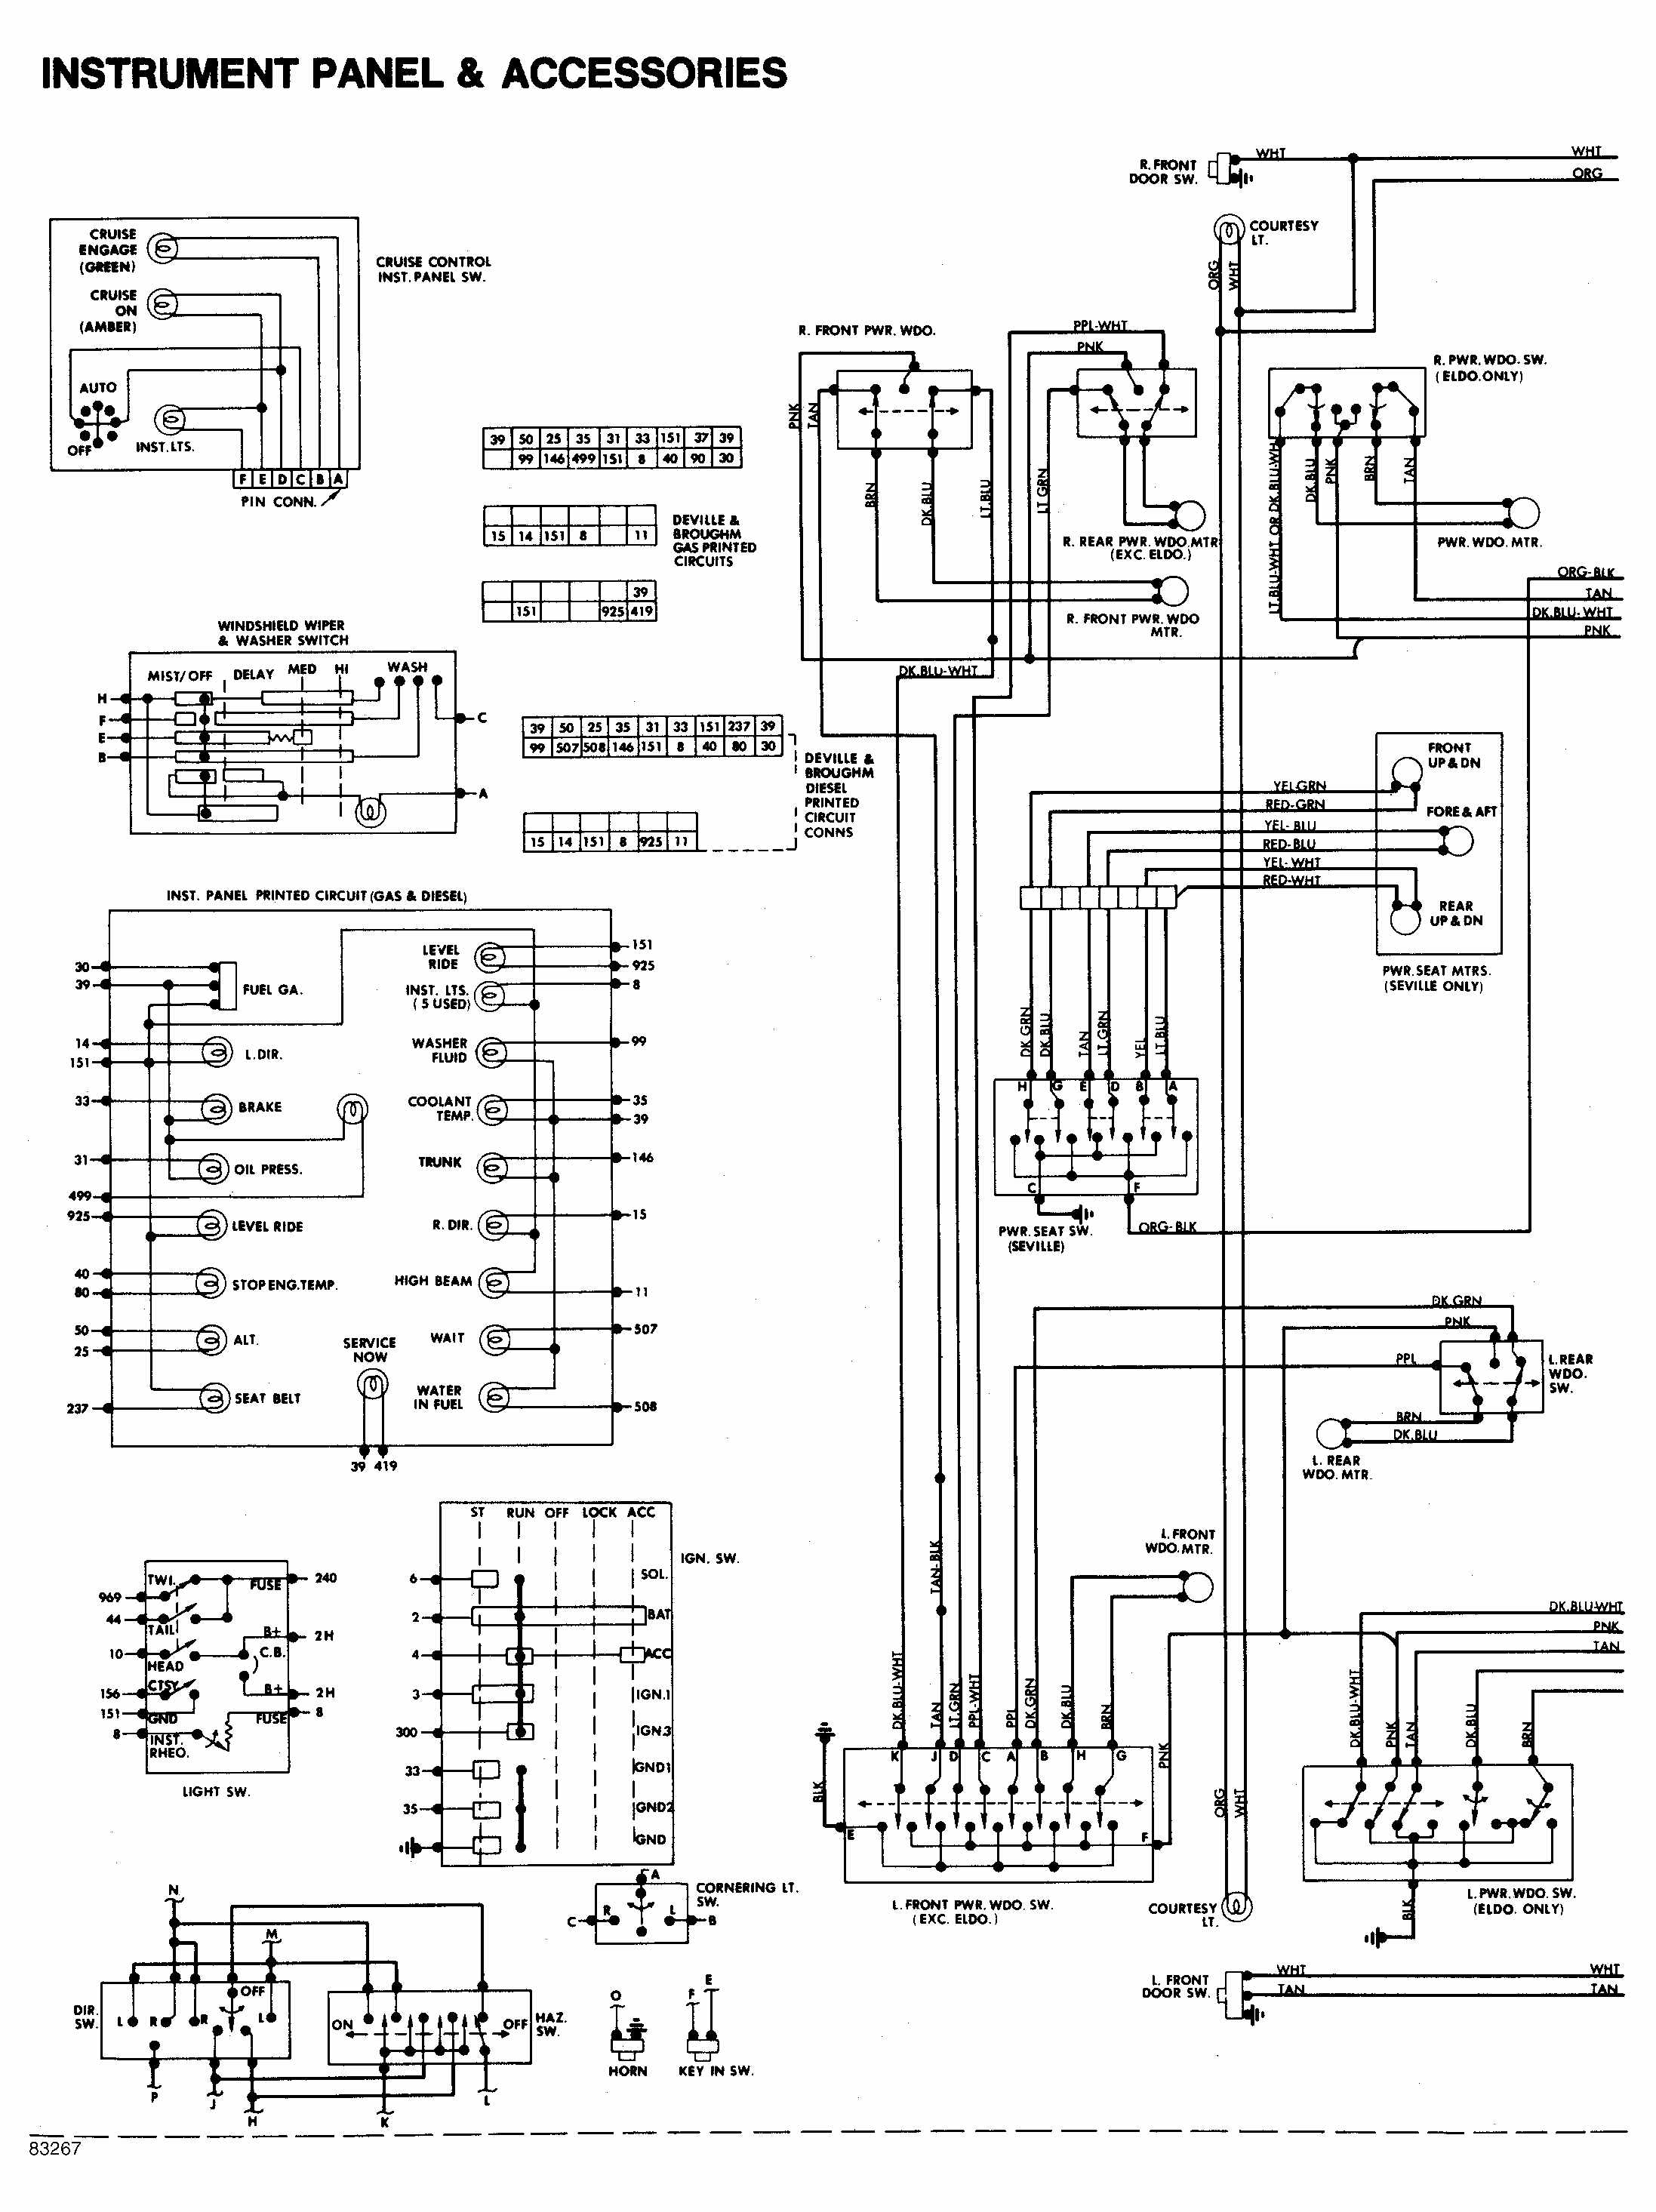 Mustang Turn Signal Wiring Diagram As Well As Corvette